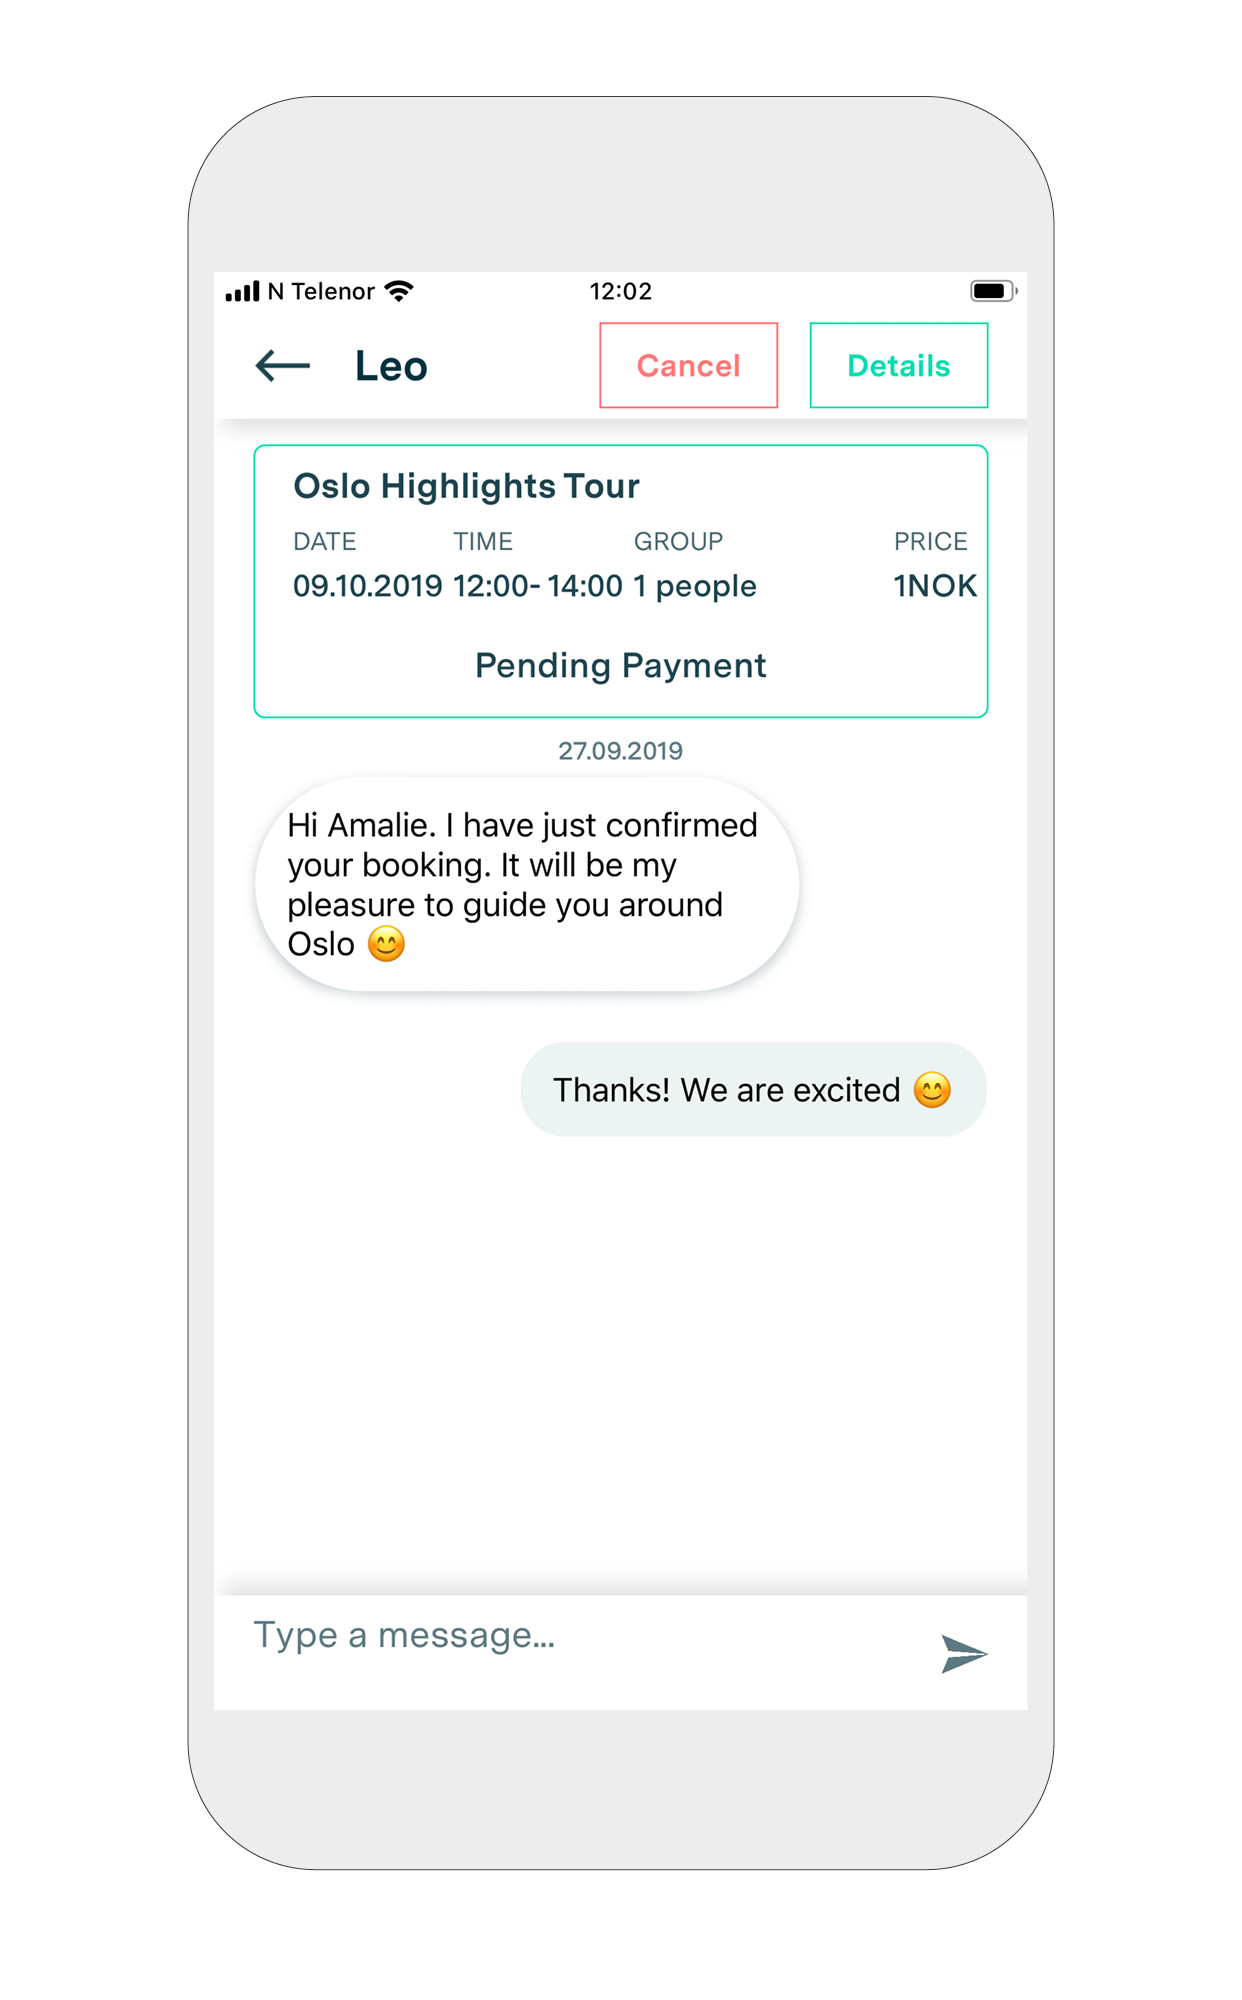 8. Chat - You can also chat directly with your guide, make suggestions or cancel the experience.